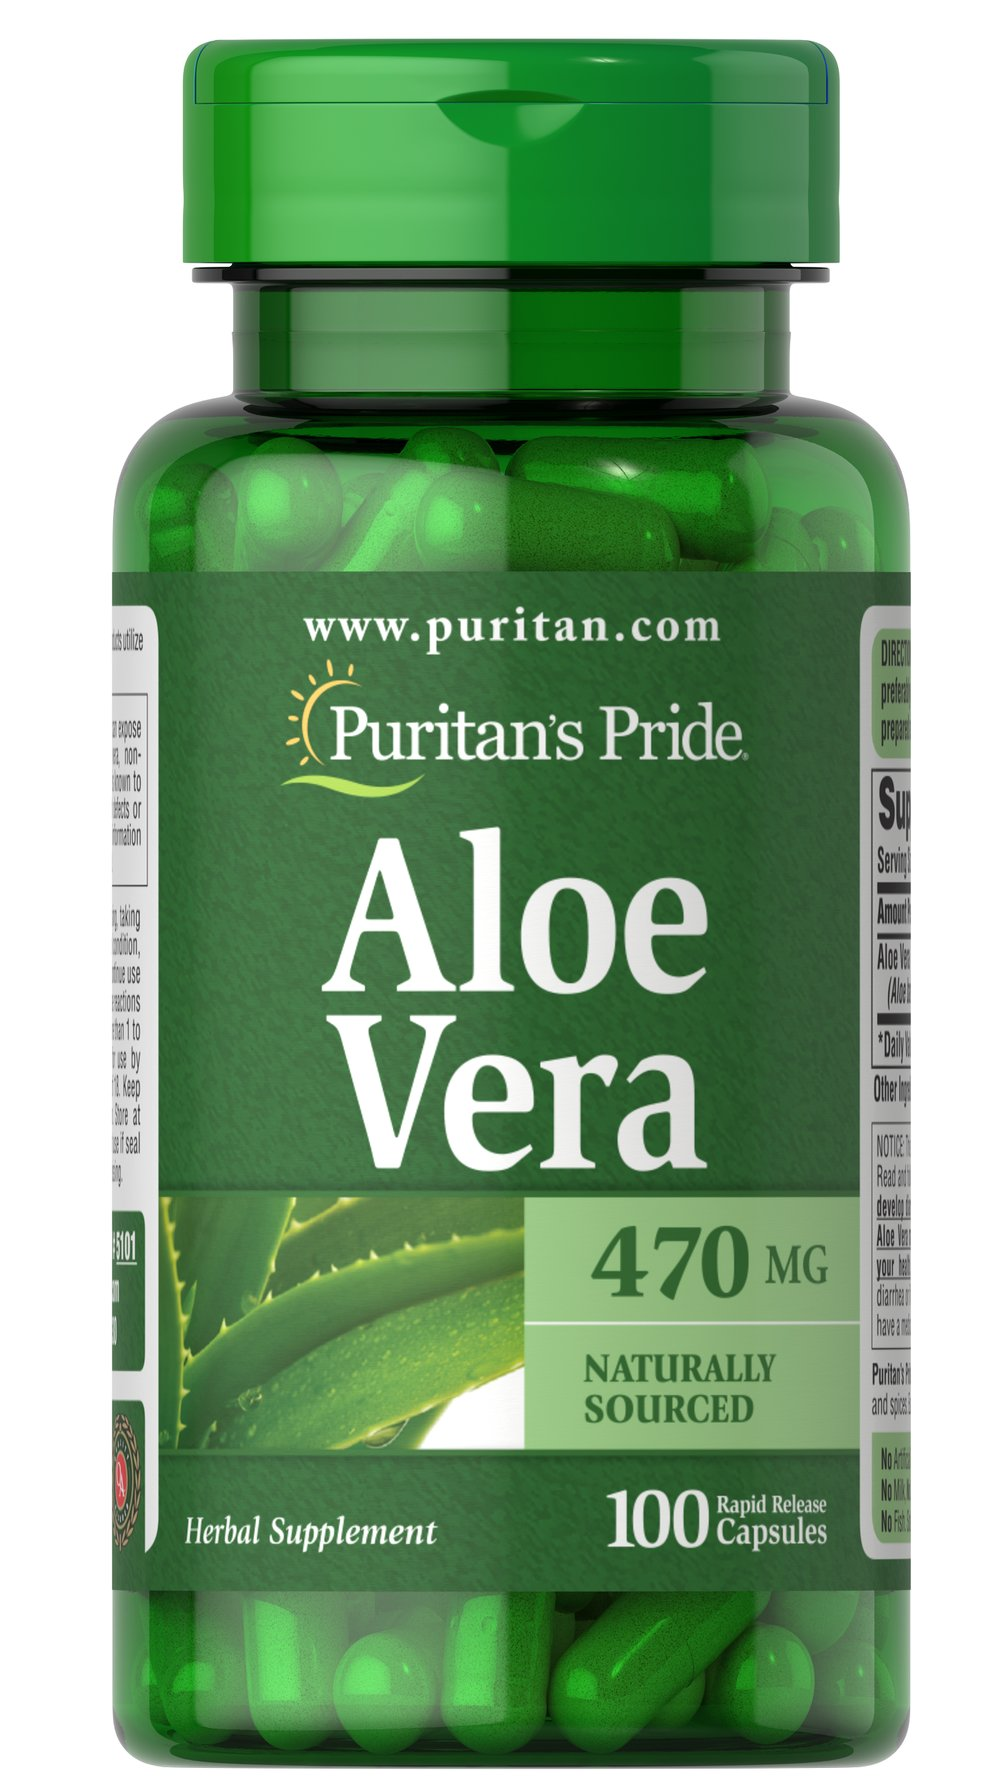 Aloe Vera 470 mg <p>Serves as an aid for healthy digestion**</p><p>Plays a role in the well-being of the body**</p><p>Convenience of capsules, softgels and liquids is unsurpassed</p><p>Has been used and trusted for centuries</p><p>Aloe Vera  has been shown to support a healthy digestive system.** Its popularity as a digestive aid makes it an excellent addition to your daily eating plan.**</p> 100 Capsules 470 mg $10.99